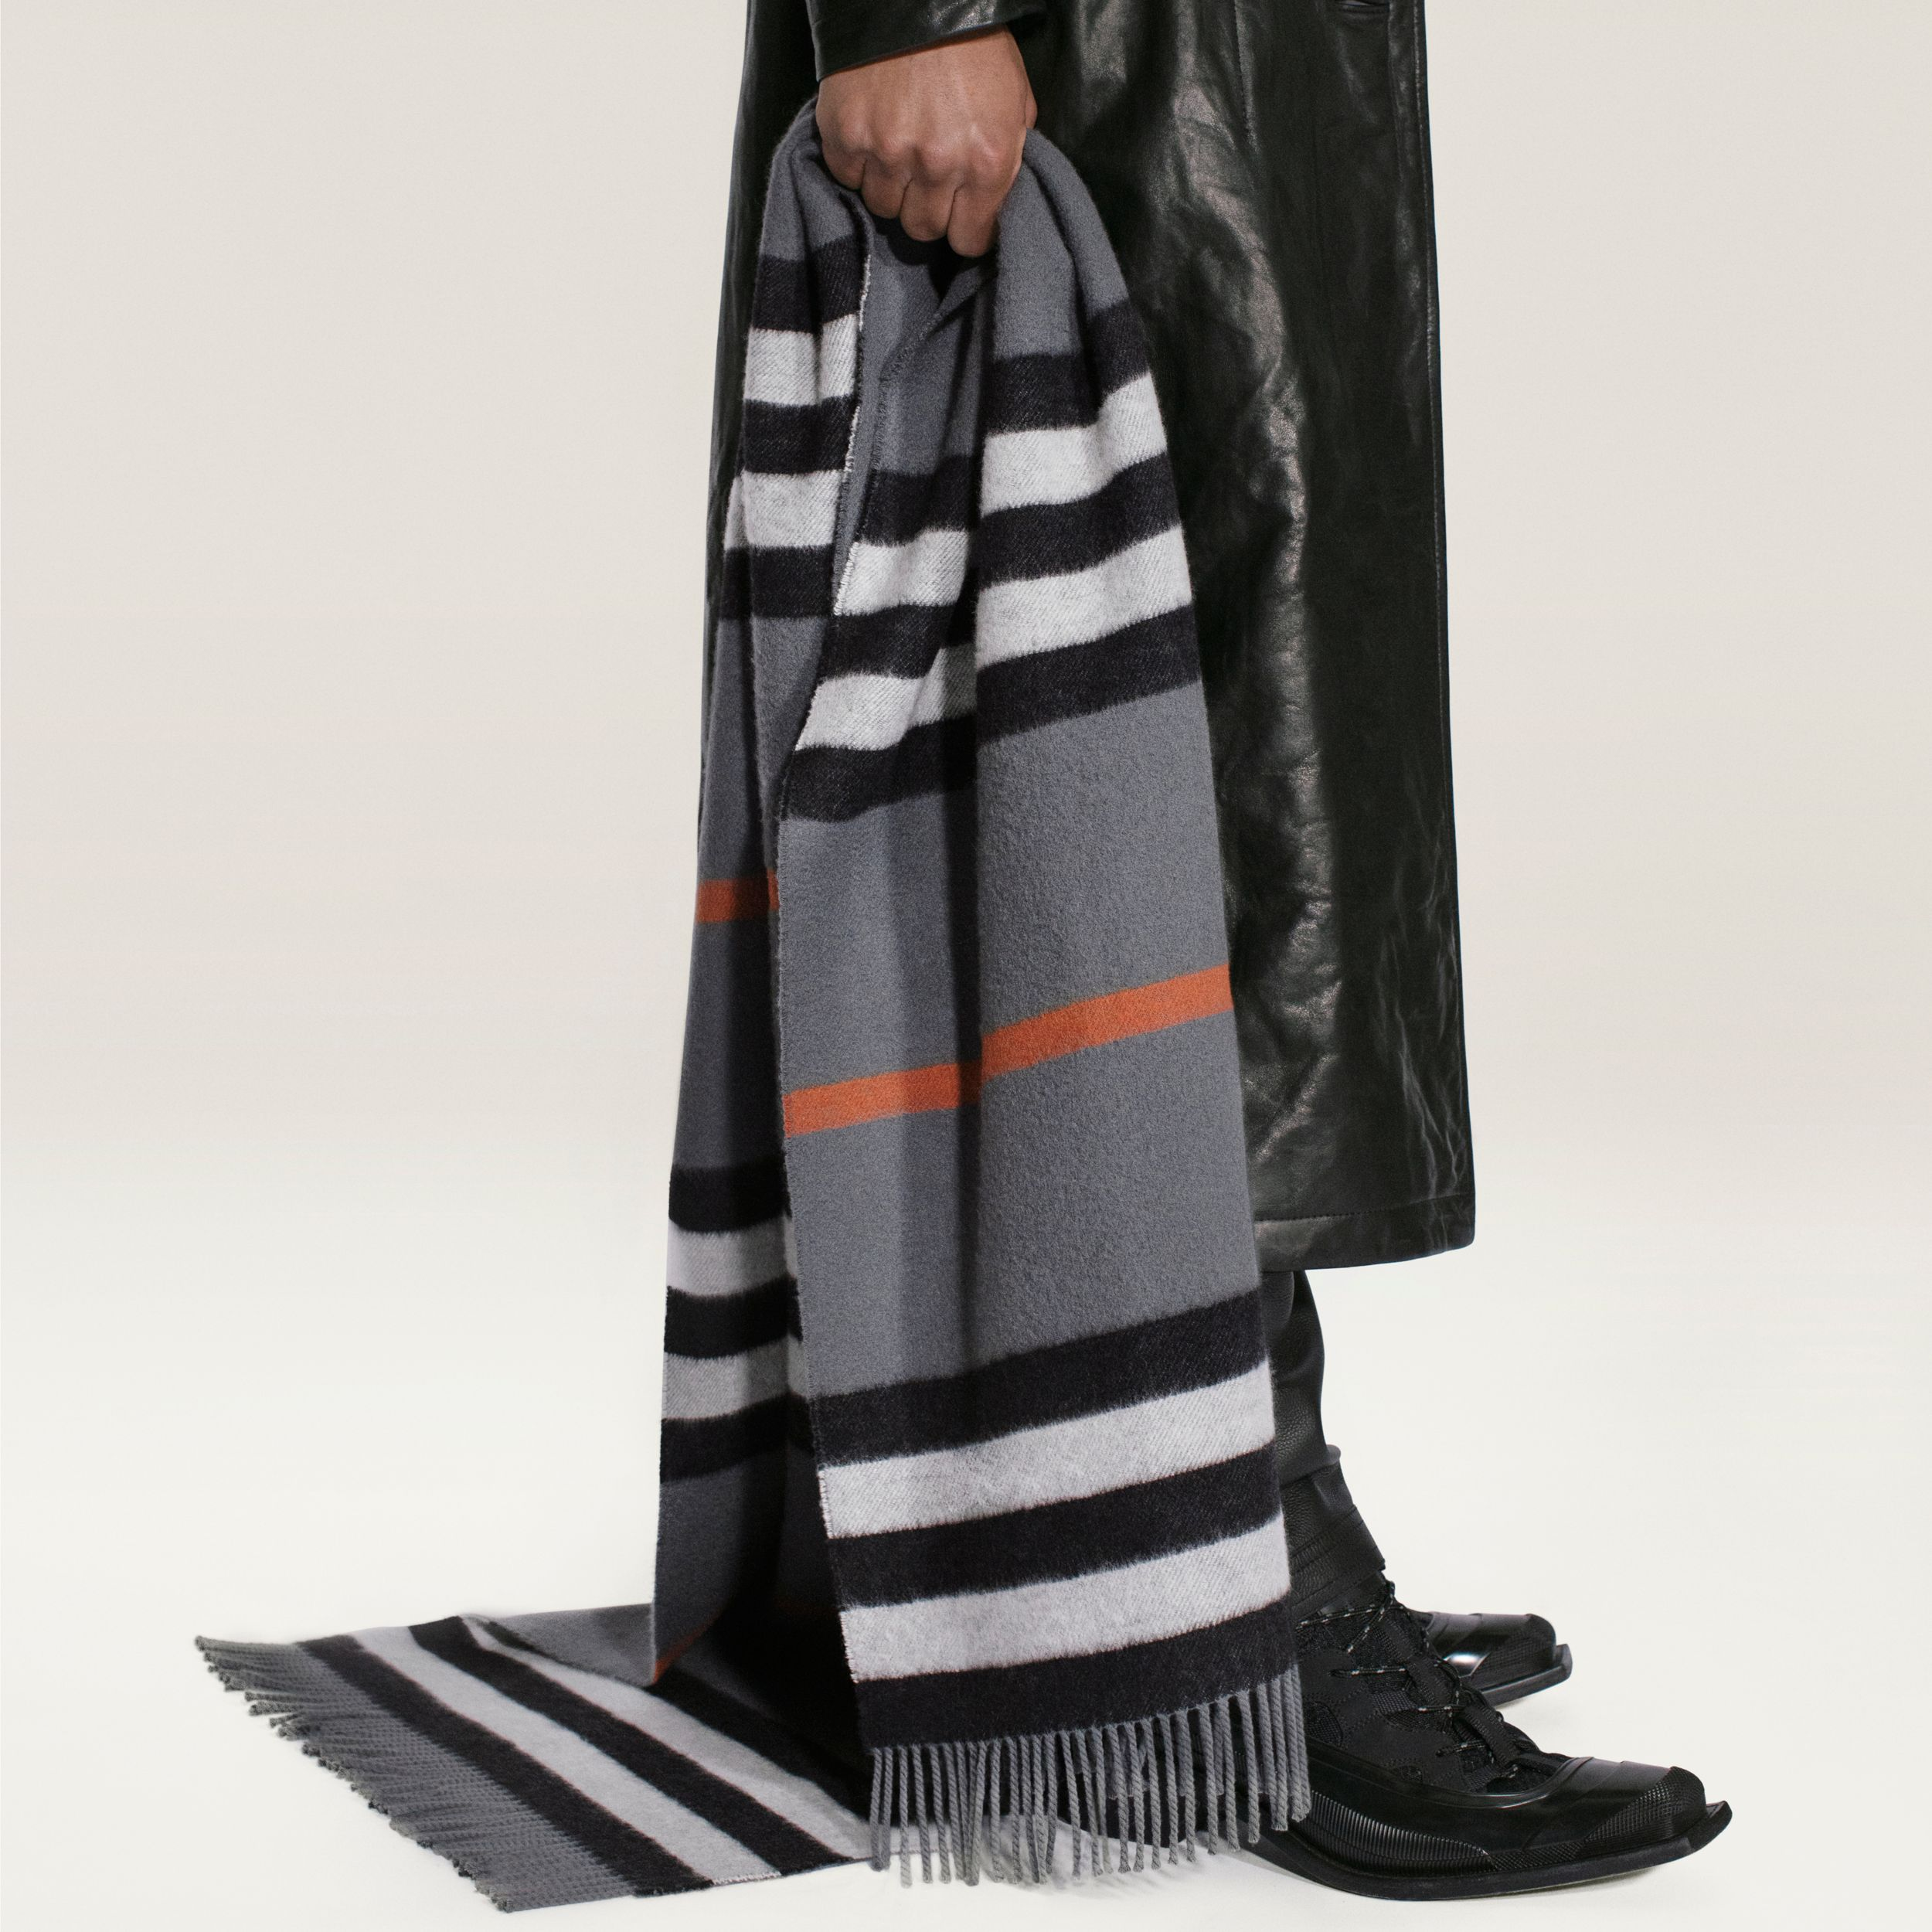 Icon Stripe Cashmere Jacquard Scarf in Mid Grey | Burberry United Kingdom - 2